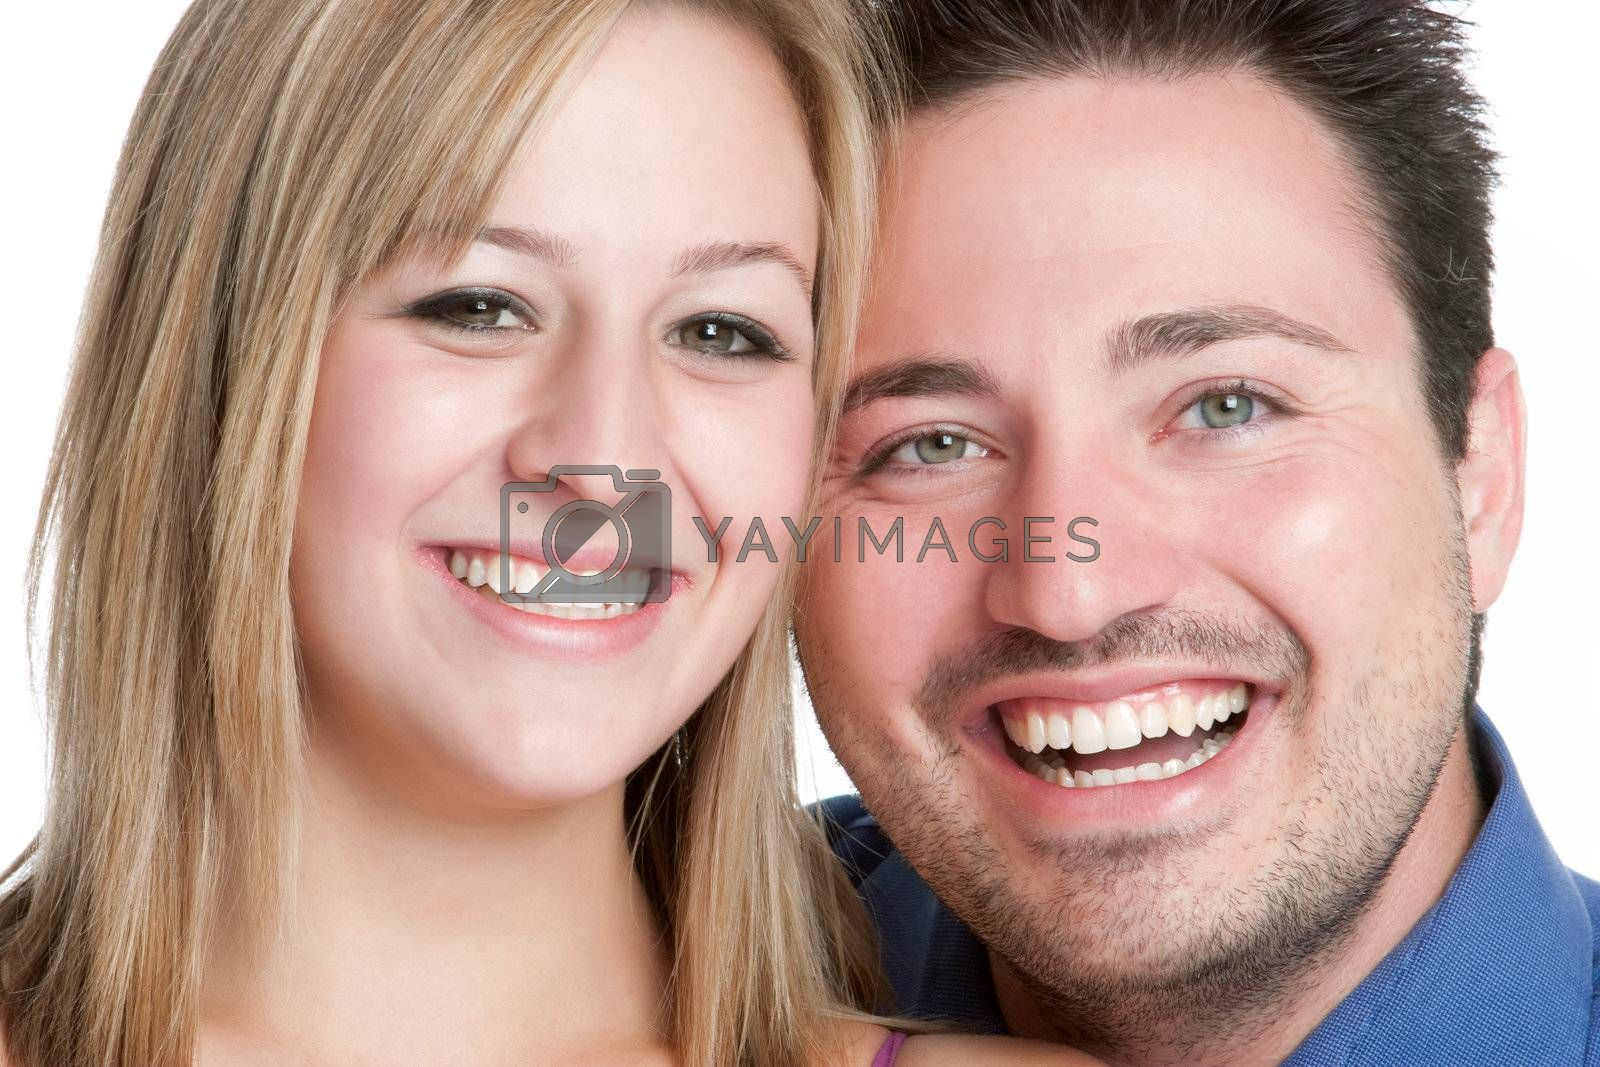 Smiling young man woman couple